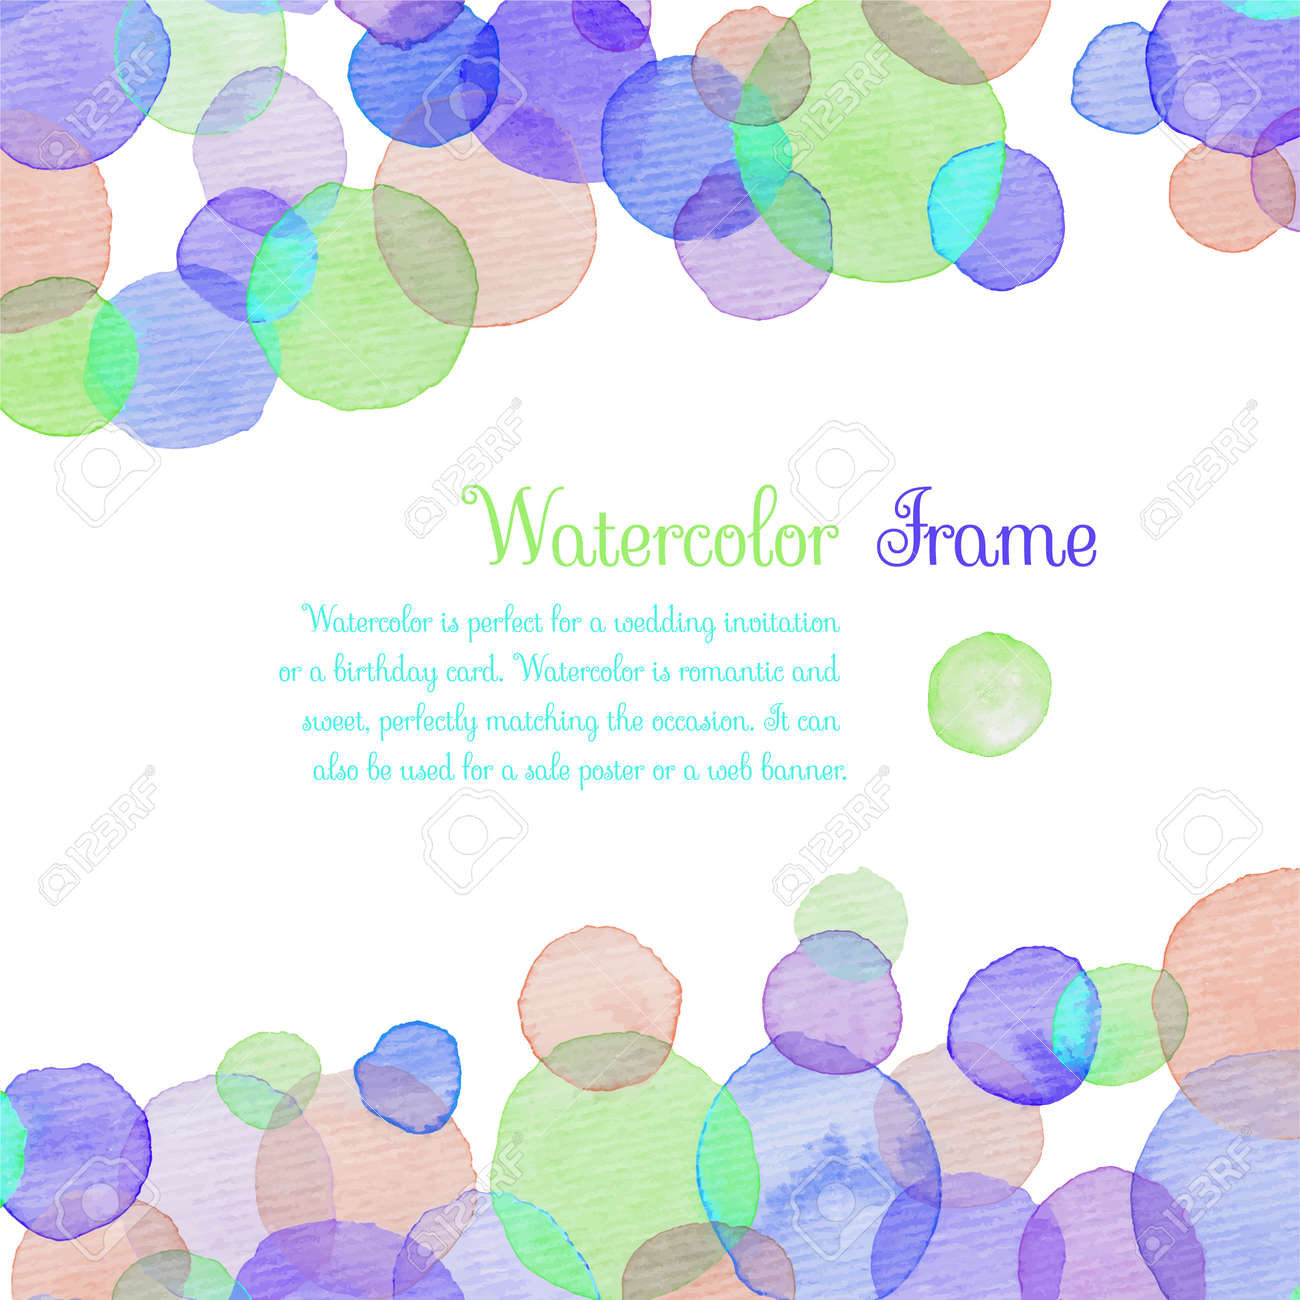 Watercolor banners greeting cards with colorful circle banners - 167020456